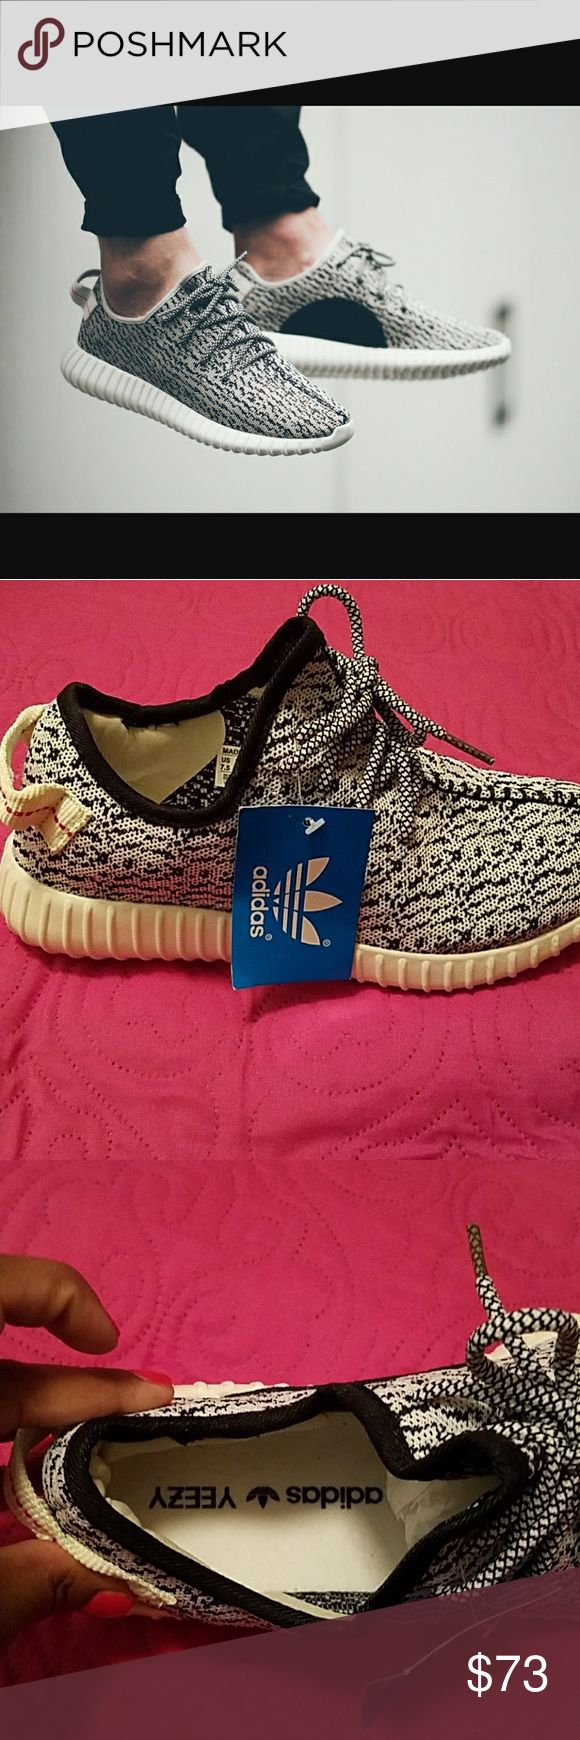 YEEZY BOOST 350 Brand new with tags! Comfy and on trend! Price is firm and no trades! Buy both pair and recieve 20% off. adidas Shoes Athletic Shoes